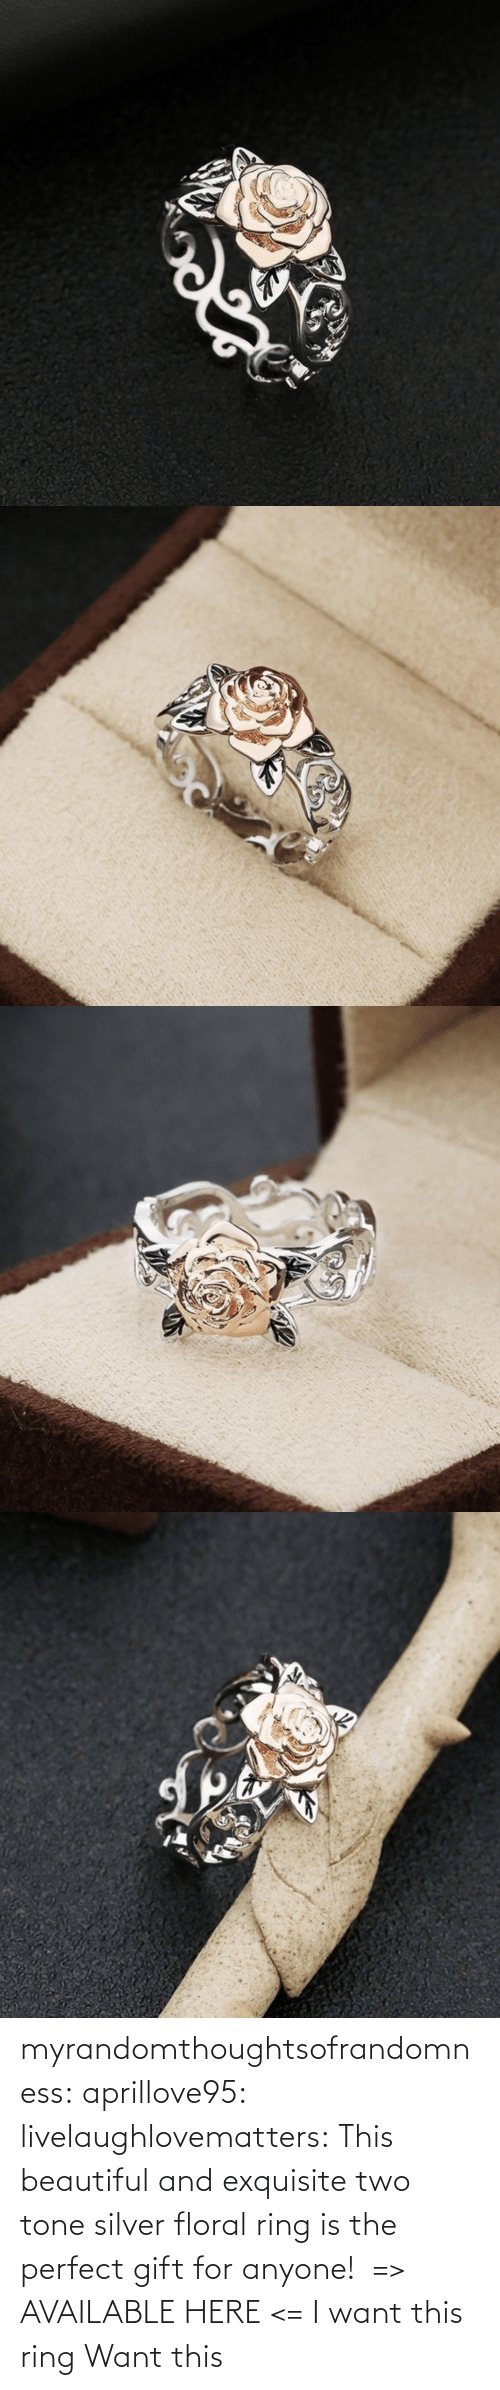 Silver: myrandomthoughtsofrandomness:  aprillove95: livelaughlovematters:  This beautiful and exquisite two tone silver floral ring is the perfect gift for anyone!  => AVAILABLE HERE <=    I want this ring     Want this